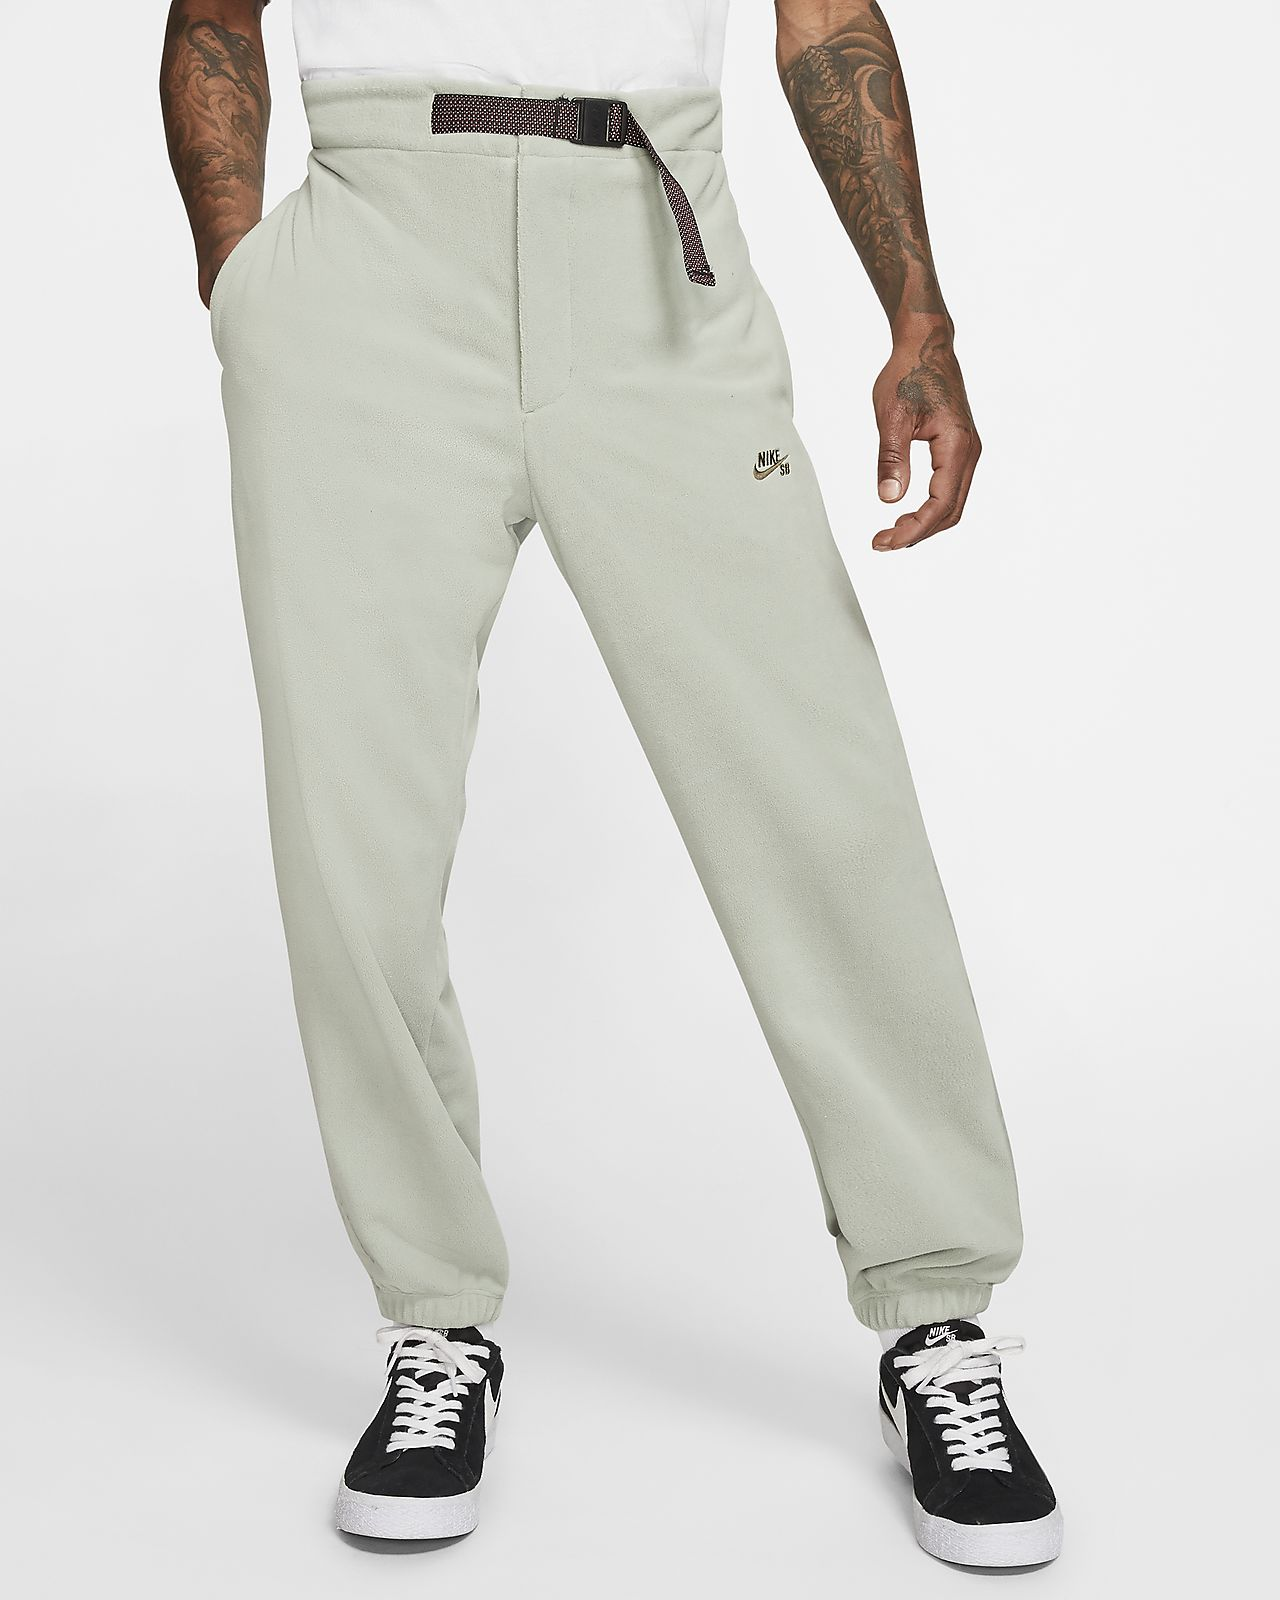 Nike SB Men's Fleece Skate Trousers